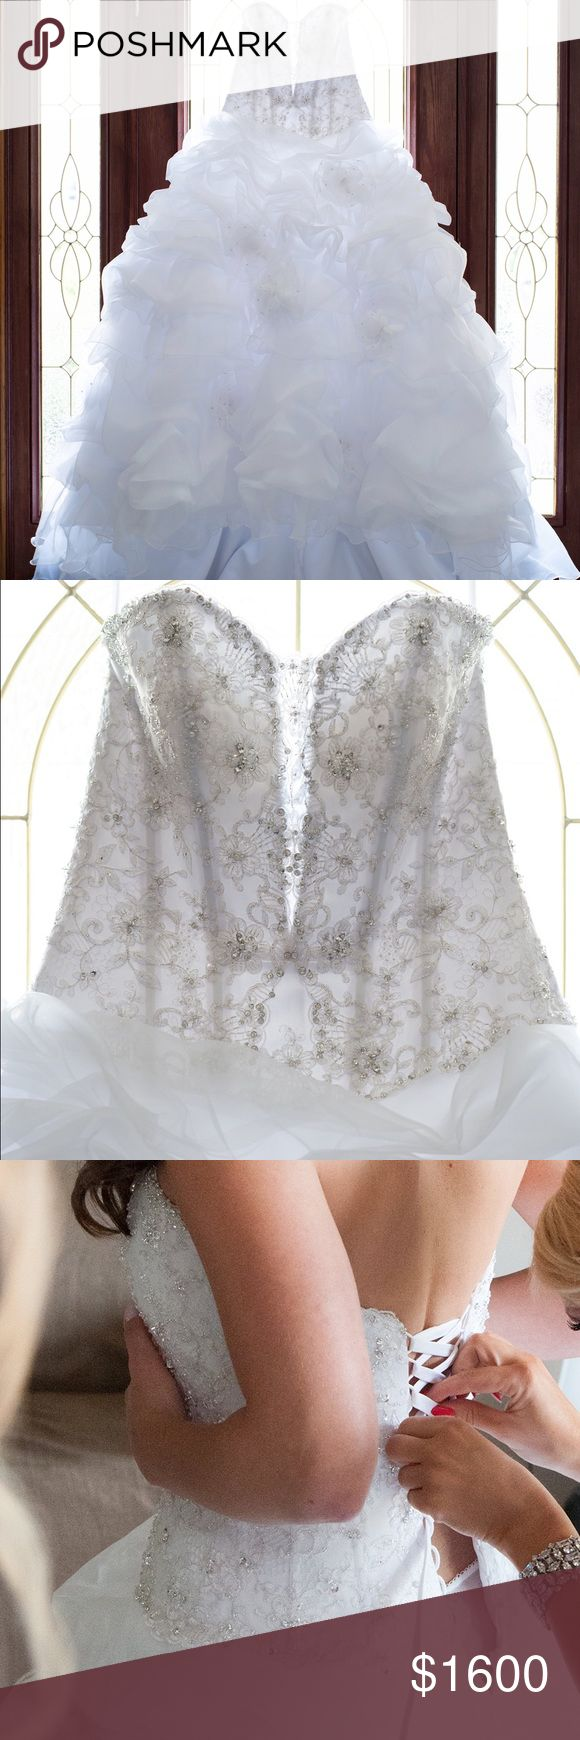 Gorgeous white Allure Bridal Wedding Ball gown Mint condition Allure C710 wedding dress worn once in church wedding/indoor reception. Professionally dry cleaned & preserved ($150+). Strapless ball gown features a unique sweetheart neckline, embellished with embroidery & Swarovski crystals. Back ties up allowing for a snug or loose fit or to adjust to a smaller or larger size & has a privacy panel to clip under the tie up. Skirt has soft pick-up details accented w/feathered flowers. White…